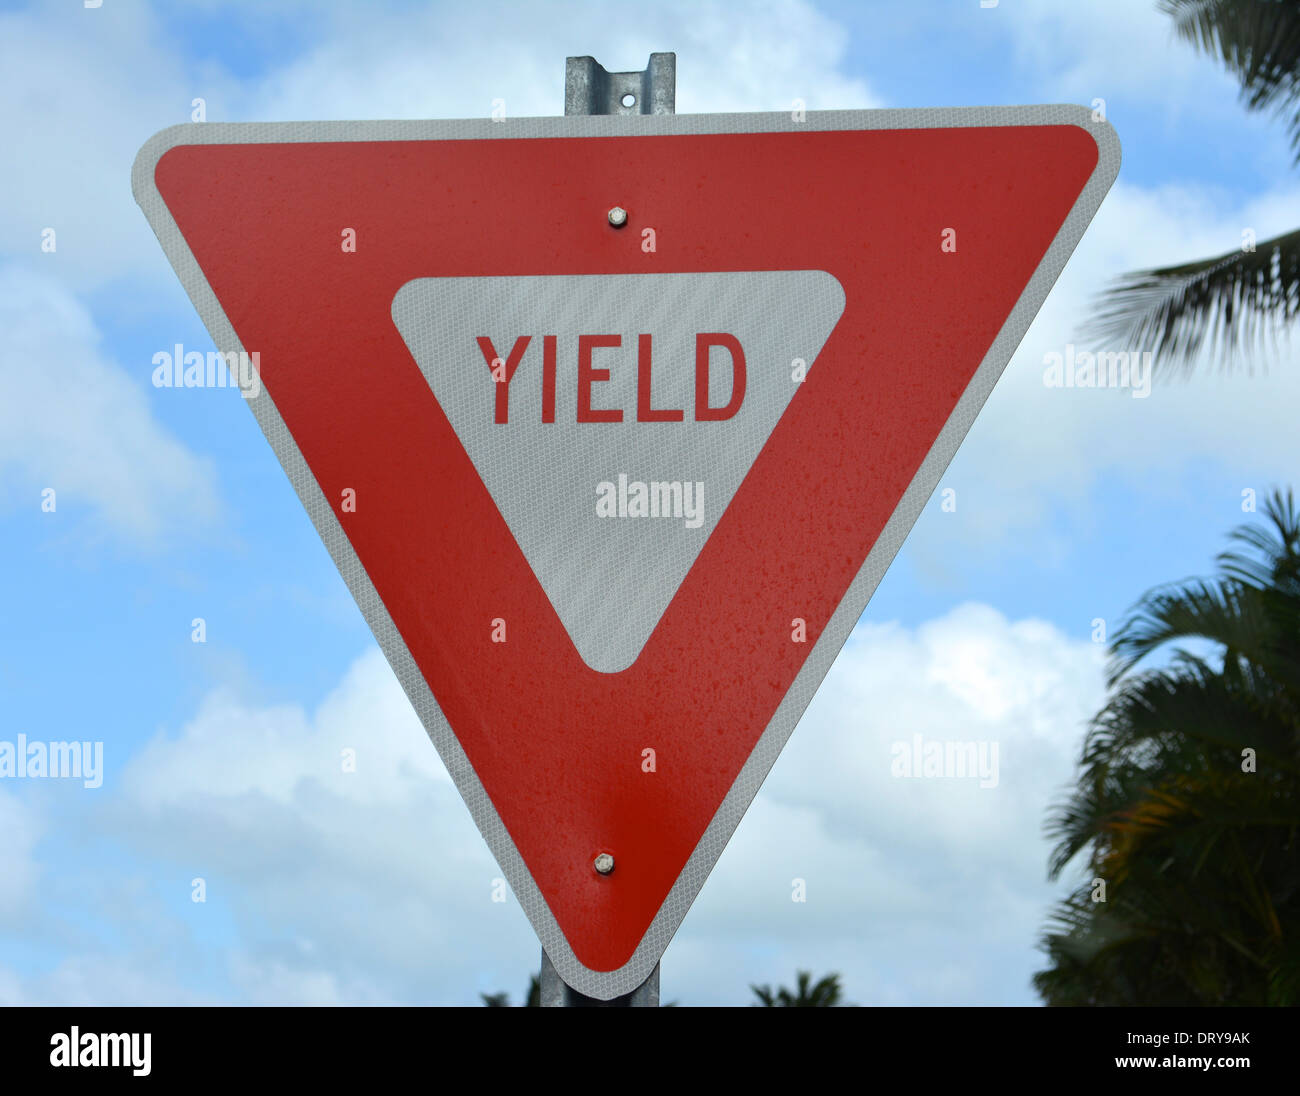 The Yield Sign - Stock Image